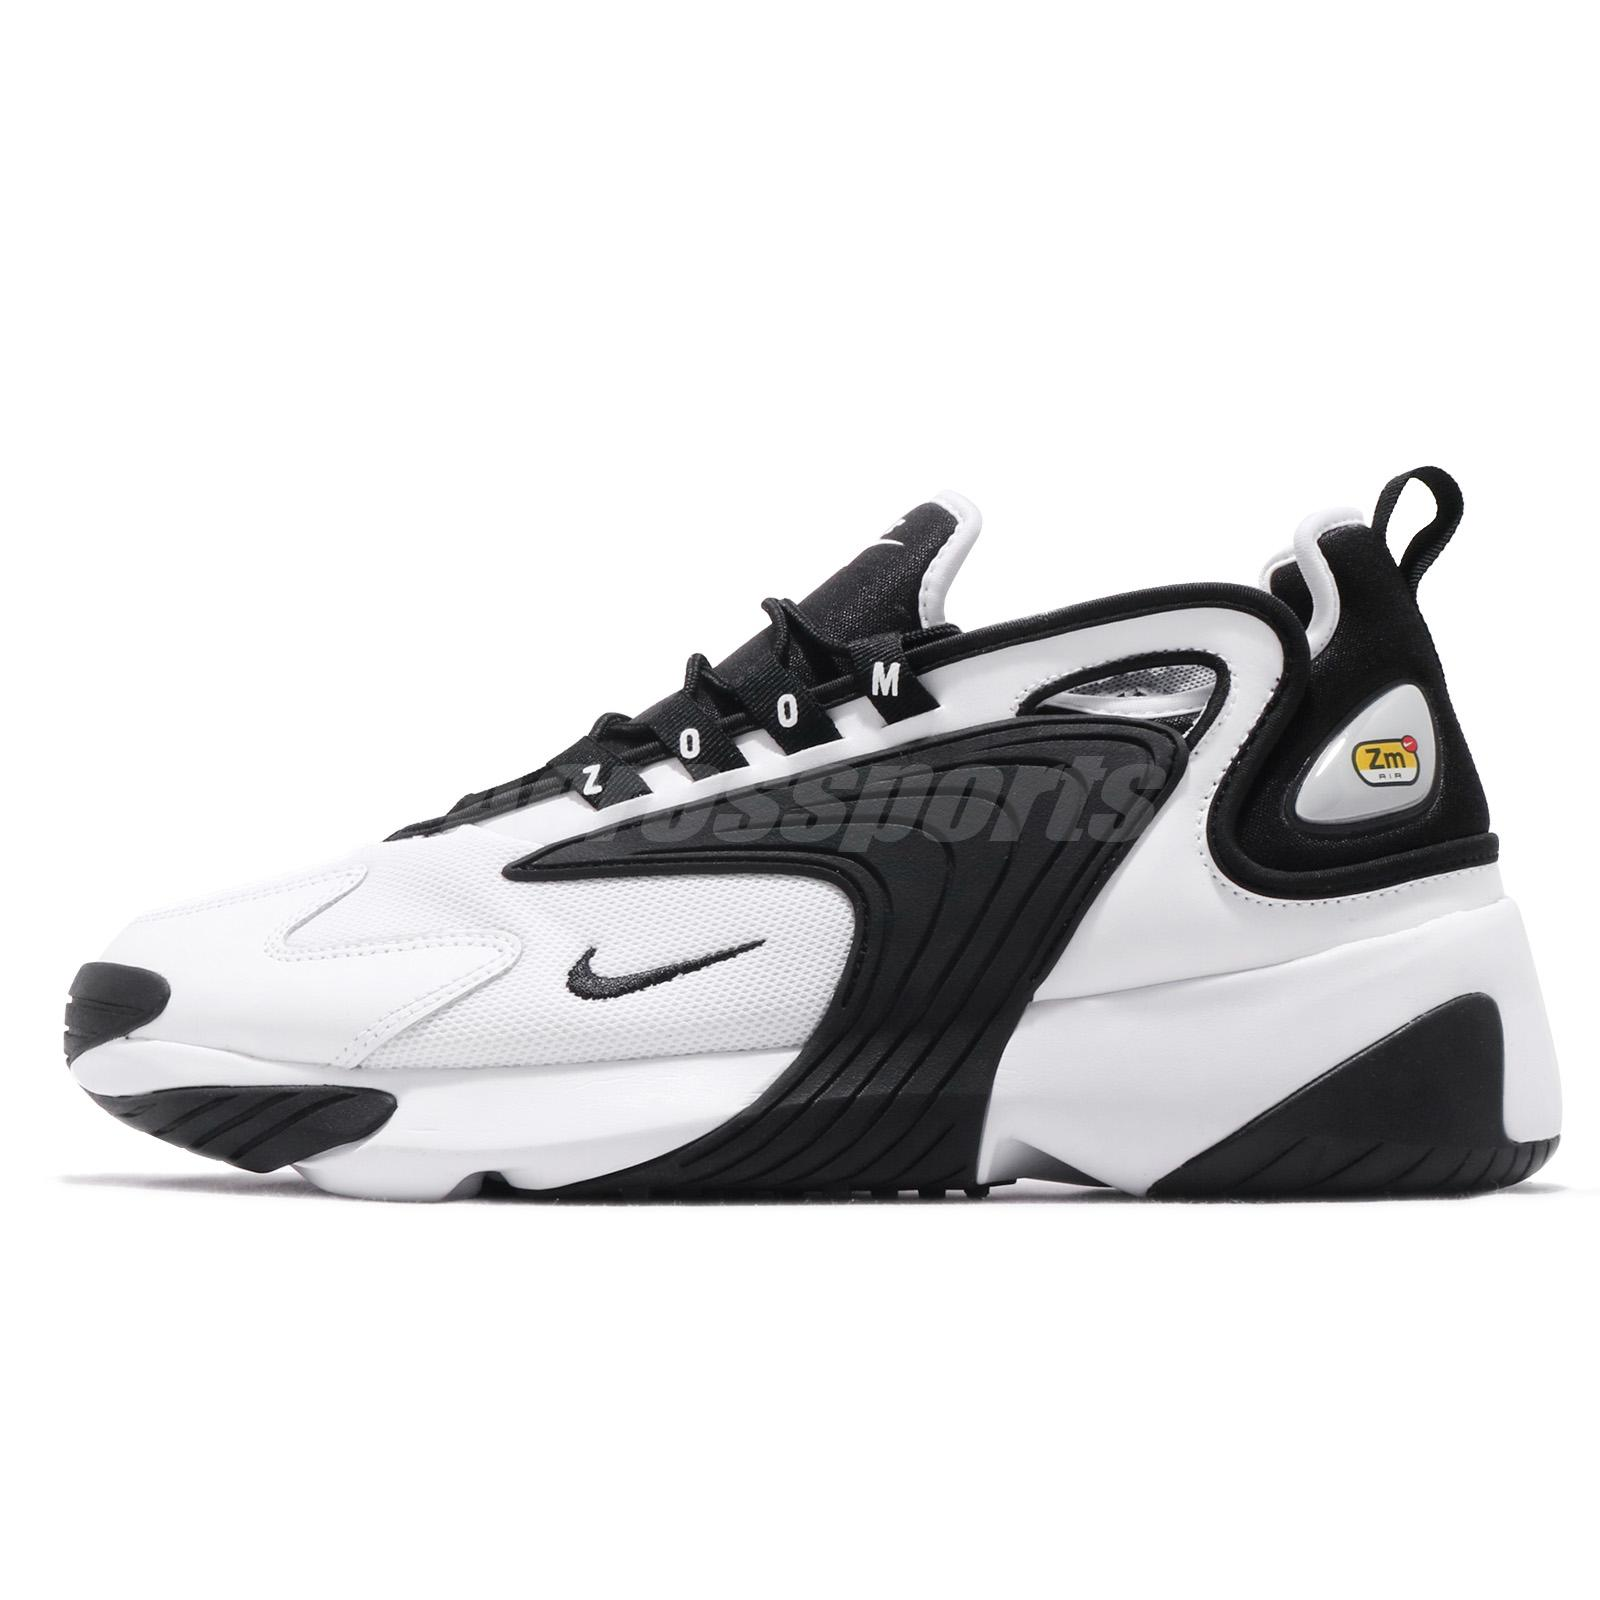 on sale new arrive buying cheap Details about Nike Zoom 2K ZM Air 2000 White Black Men Lifestyle Shoes  Sneakers AO0269-101